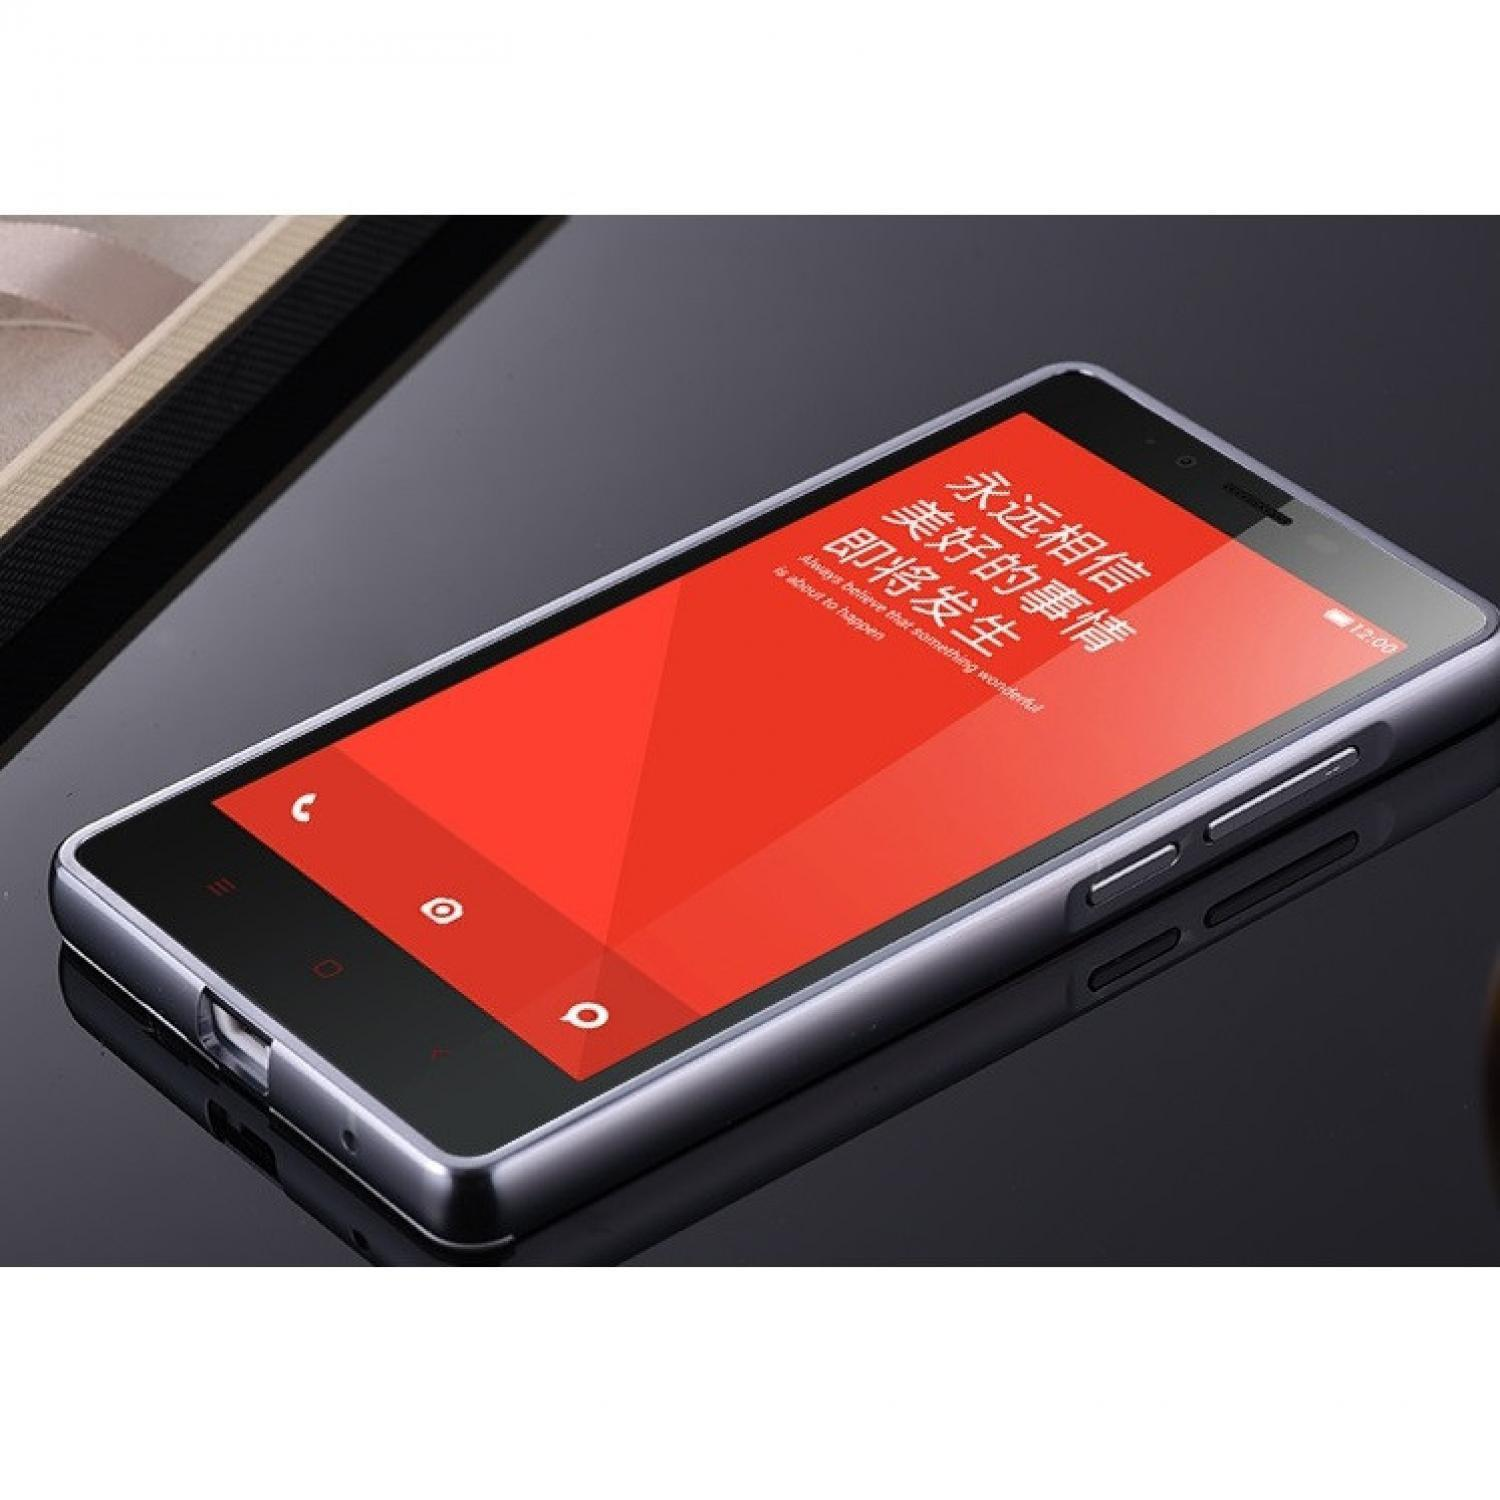 Fitur Hflb Aluminium Bumper Hard Case Casing Cover Xiaomi Redmi Mi Mirror Note 4 Back 1 3g 4g